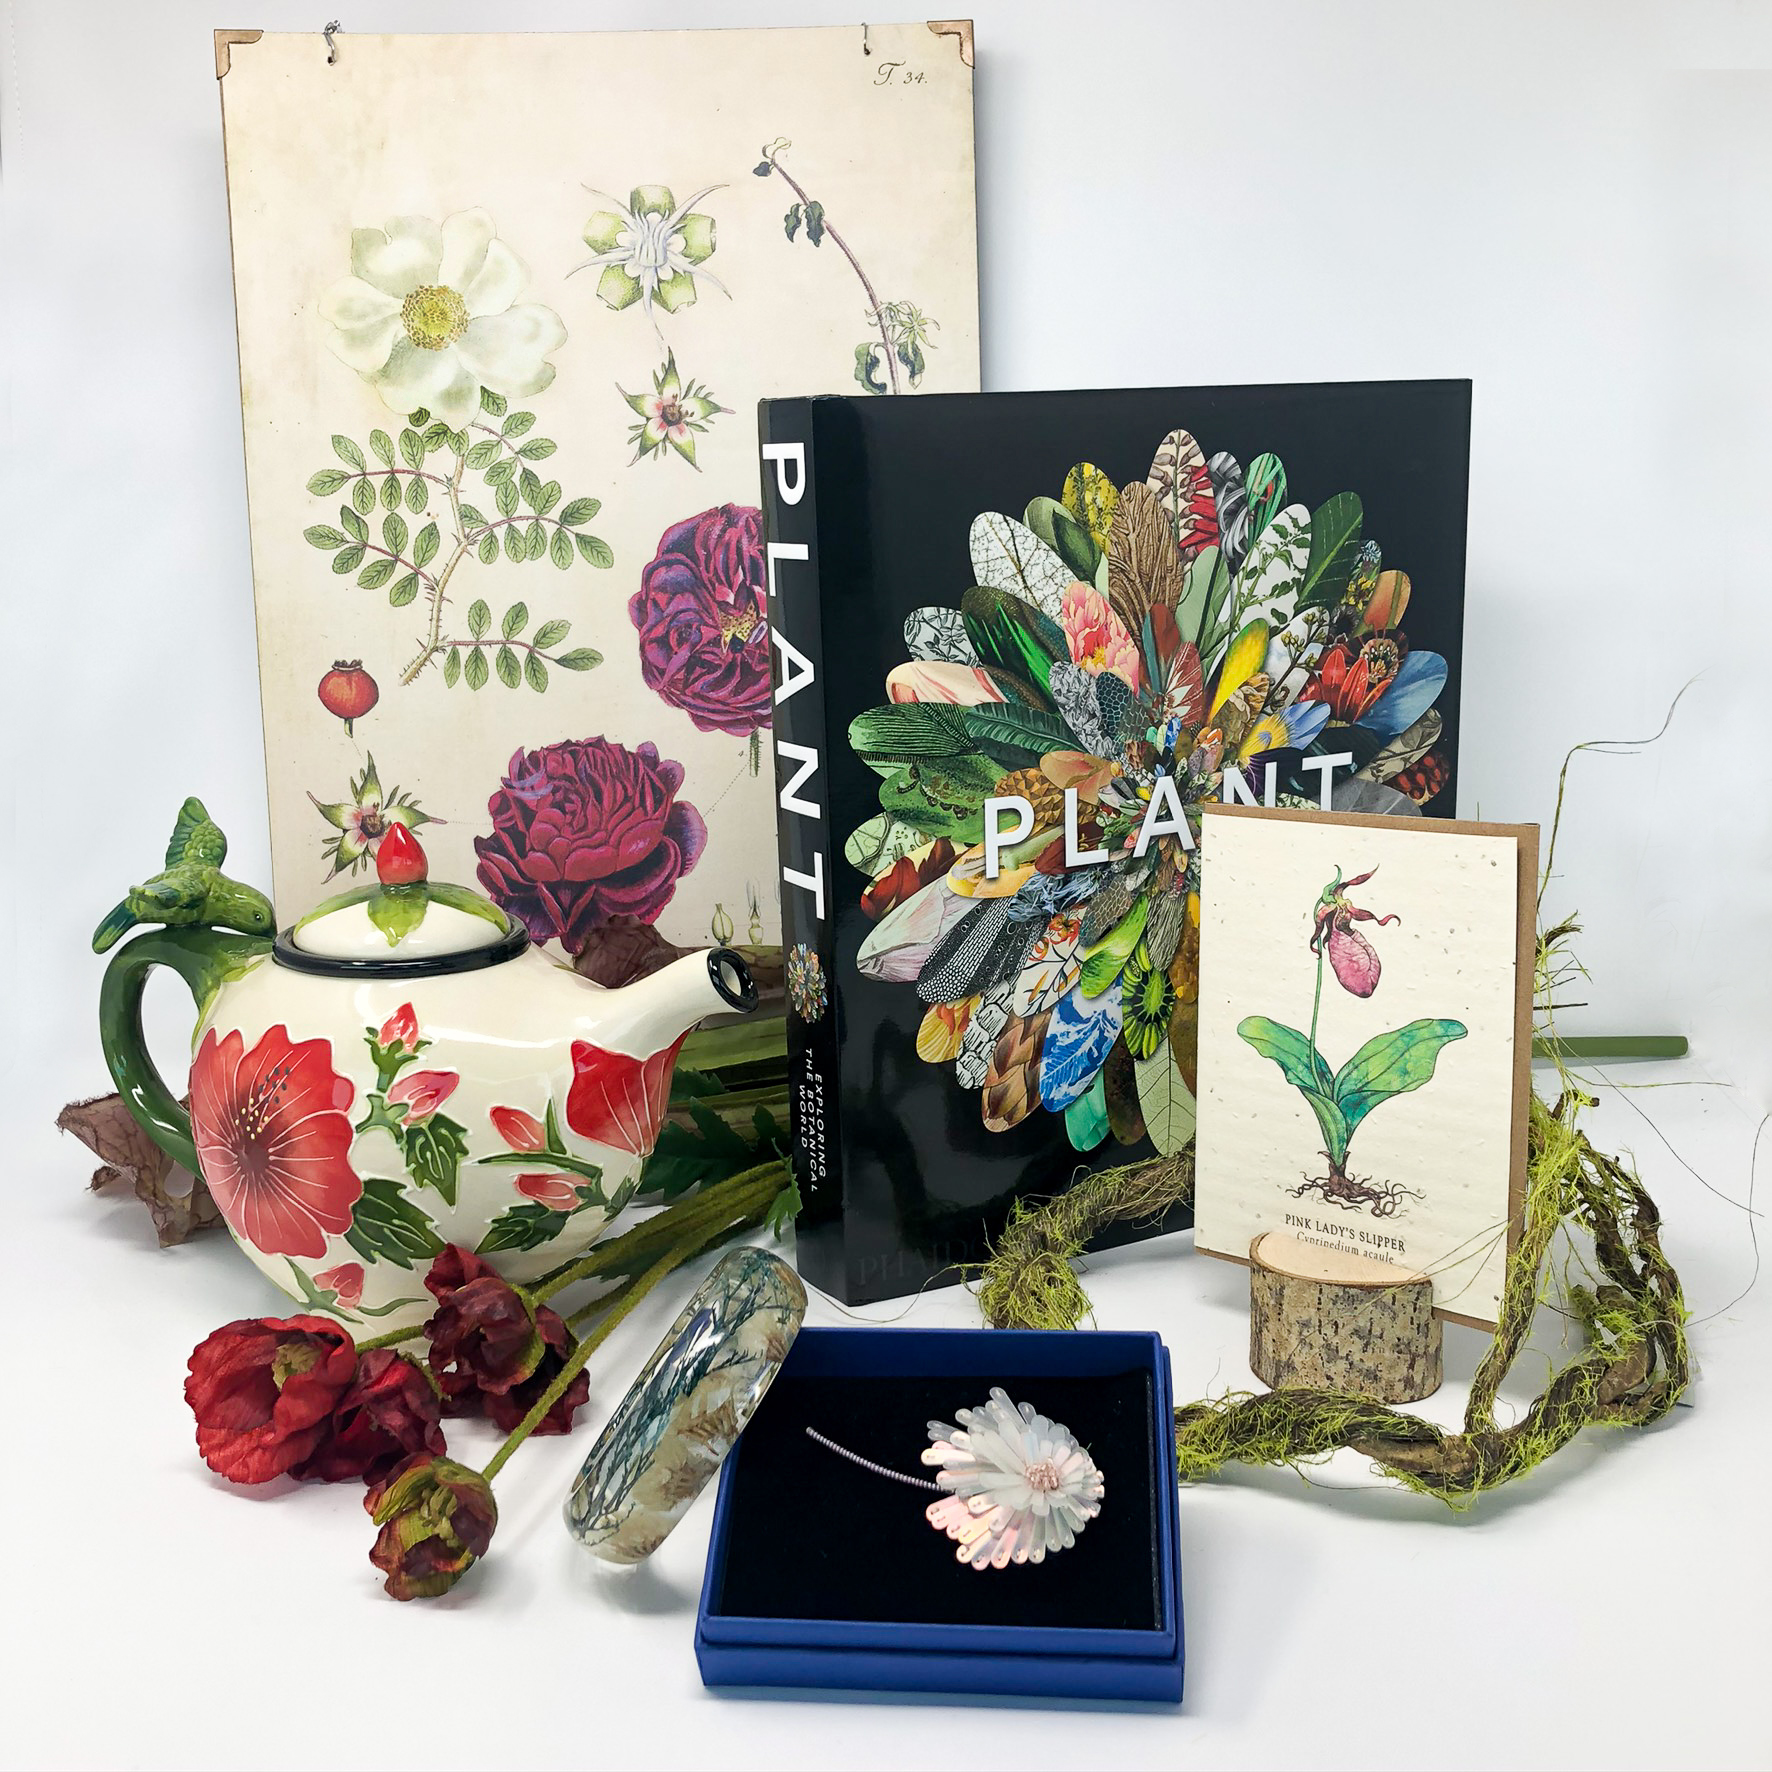 An assortment of plant-related gifts